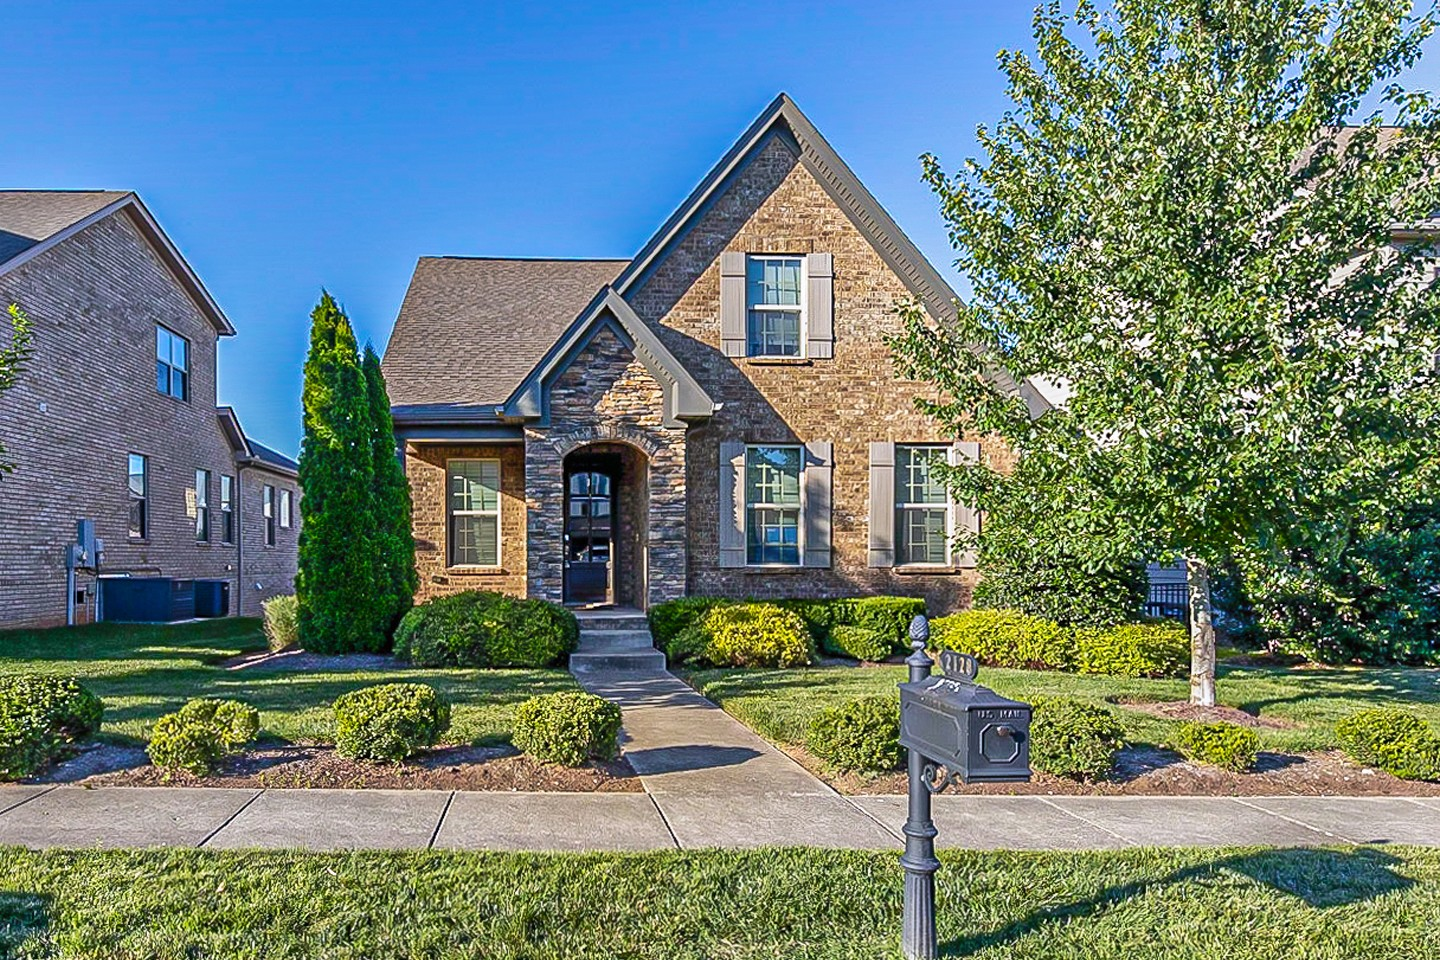 Built in 2014, this Thompsons Station two-story home offers a patio, granite countertops, and a two-car garage.